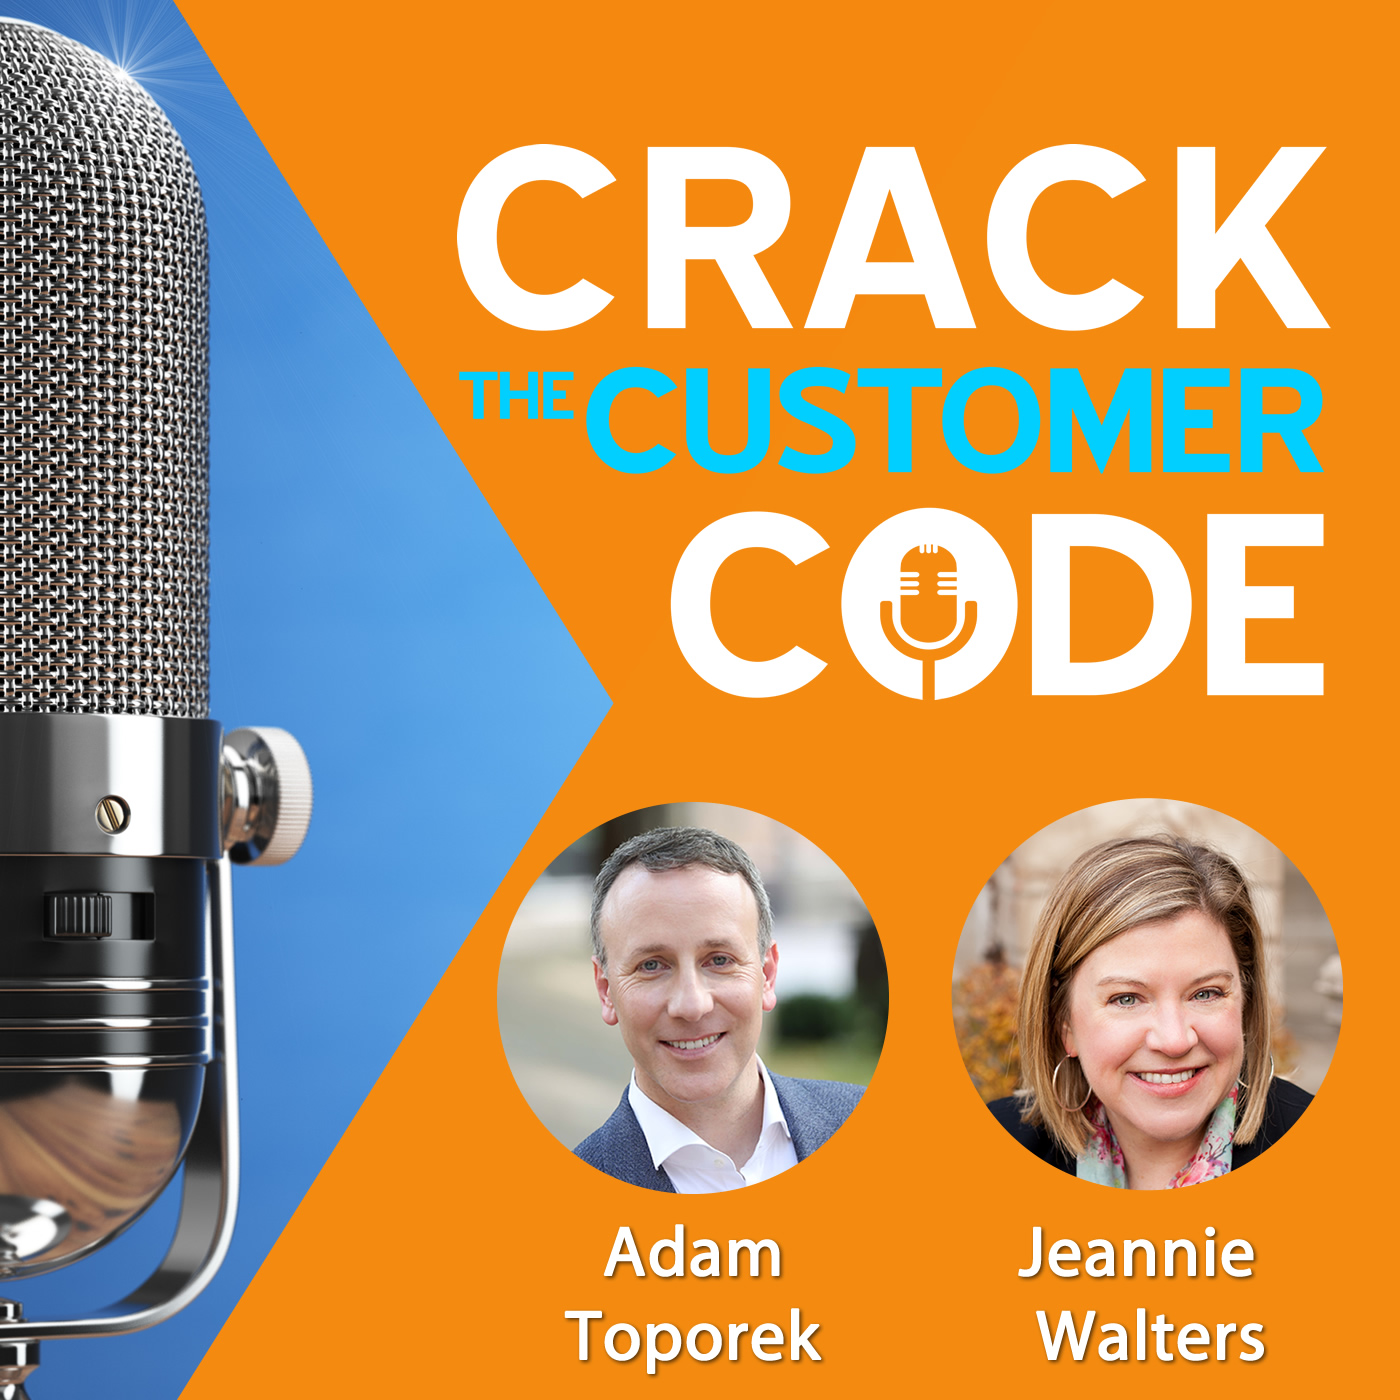 Customer Experience Podcast: Crack the Customer Code